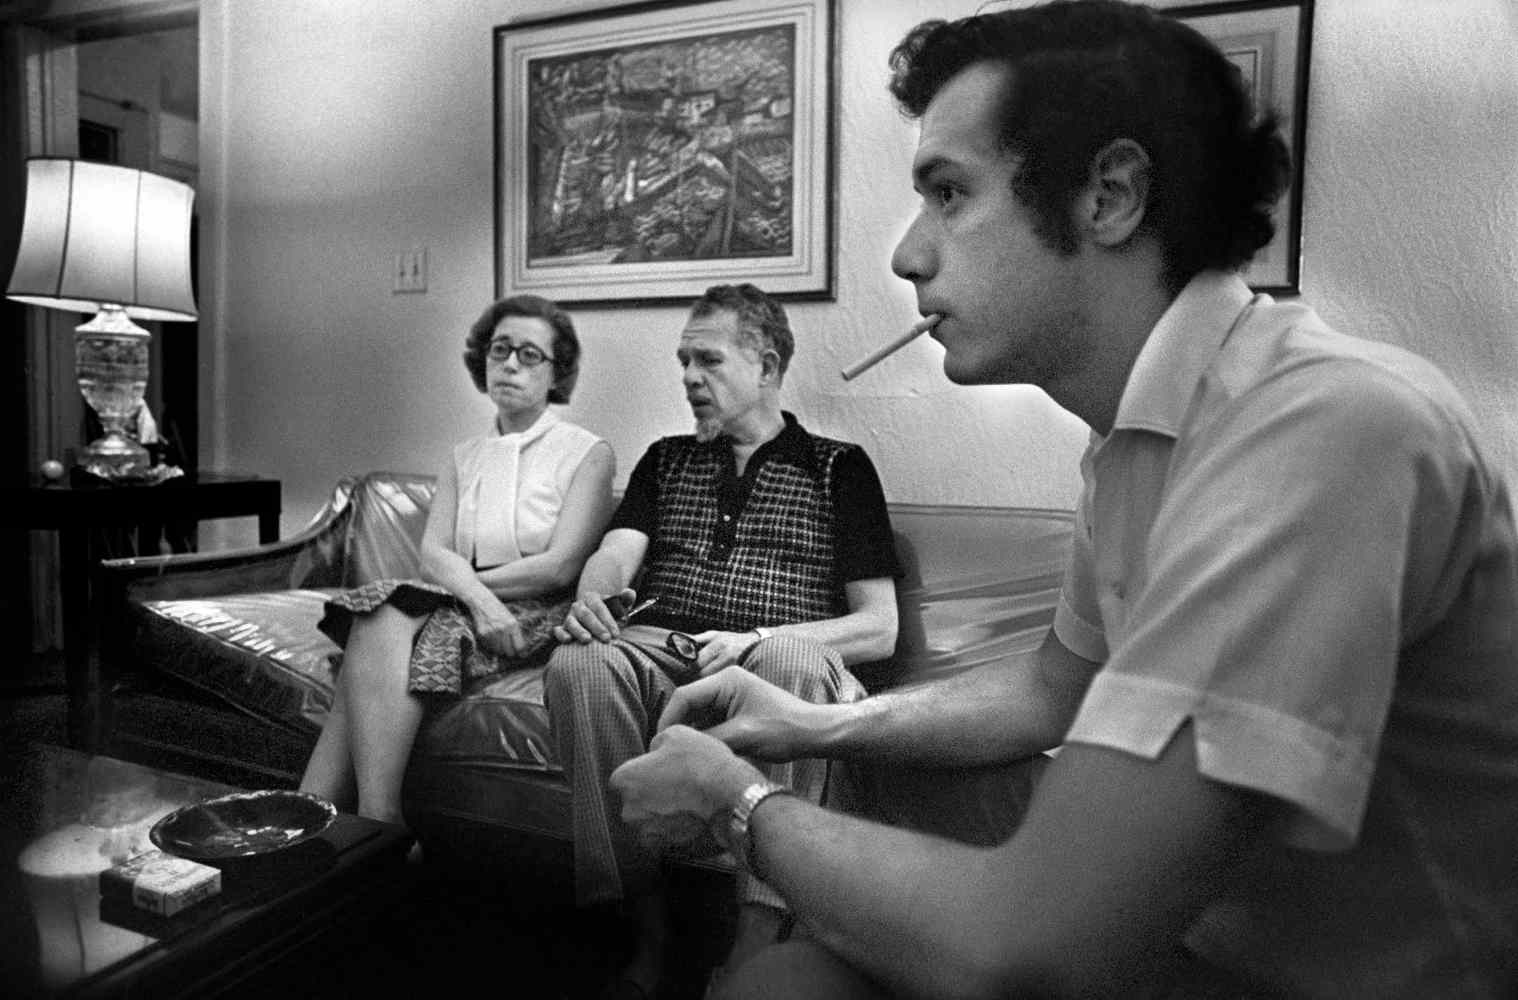 FILE -- Morty Manford, right, with his parents, Jeanne and Jules Manford, at home in the Queens borough of New York, Aug. 29, 1972. The Manfords publicly supported their son, who was gay and active in the gay rights movement; opened their house to members of the gay community; and helped start the group that became the national organization Pflag. (Paul Hosefros/The New York Times)